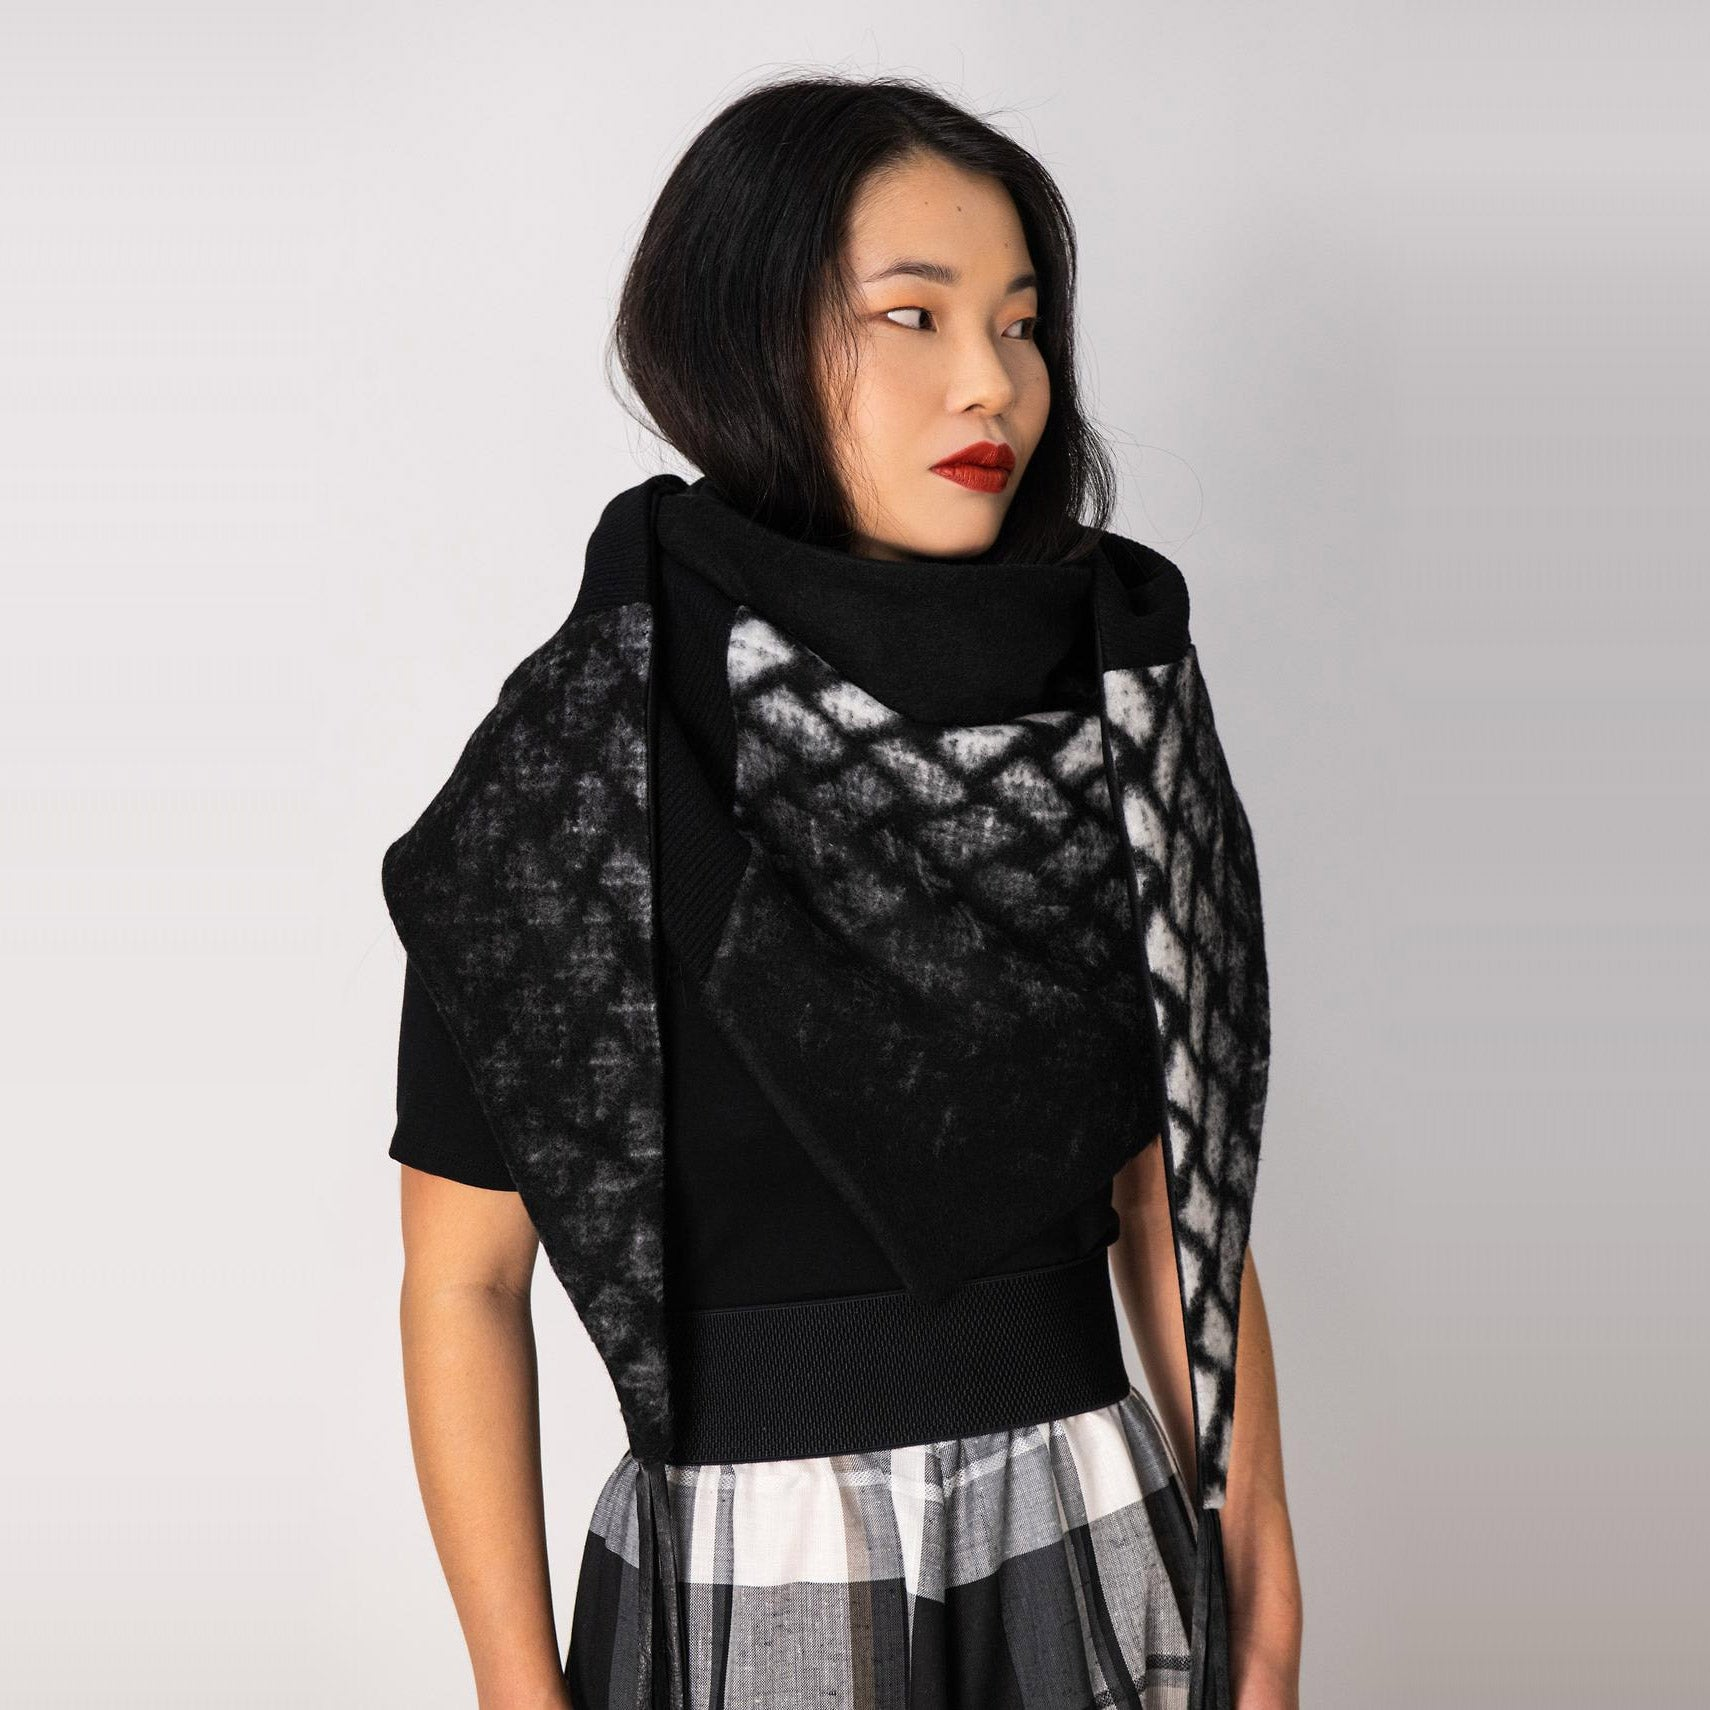 Indiana Scarf / Shawl - Black & White Diamond - Sold by Chic & Basta